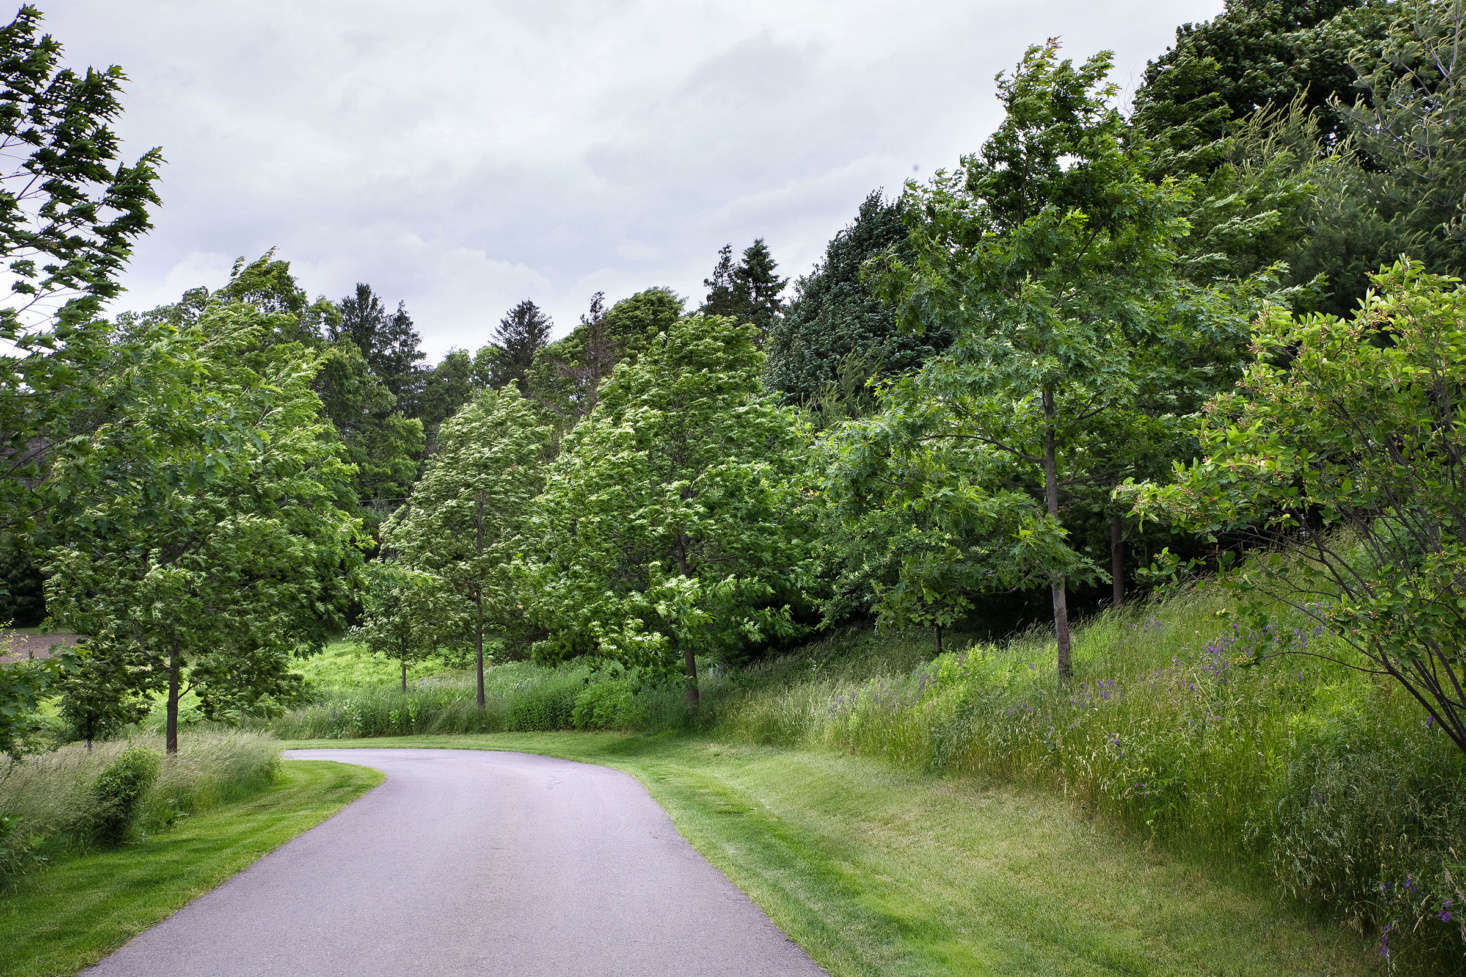 Along the driveway leading to the house, red oak (Quercus rubra) and white pine were planted in a natural, staggered sequence to blend with mature white pine already on the property. &#8